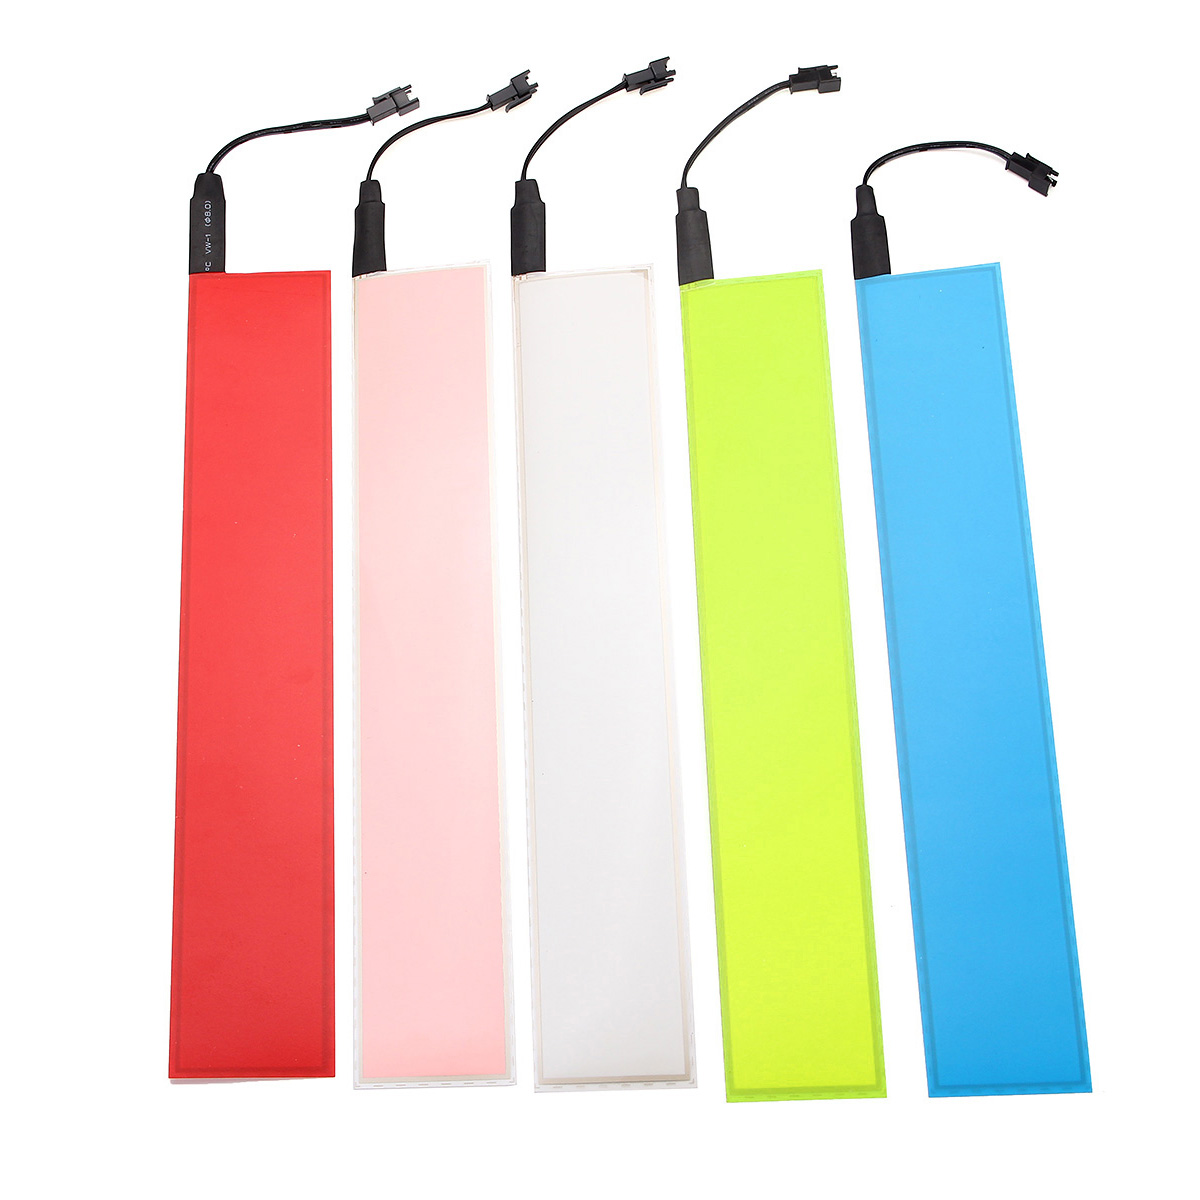 30x5cm 12V Flexible EL Light Panel Electroluminescent Back Light Strip Lamp with Inverter for Home Car Party30x5cm 12V Flexible EL Light Panel Electroluminescent Back Light Strip Lamp with Inverter for Home Car Party